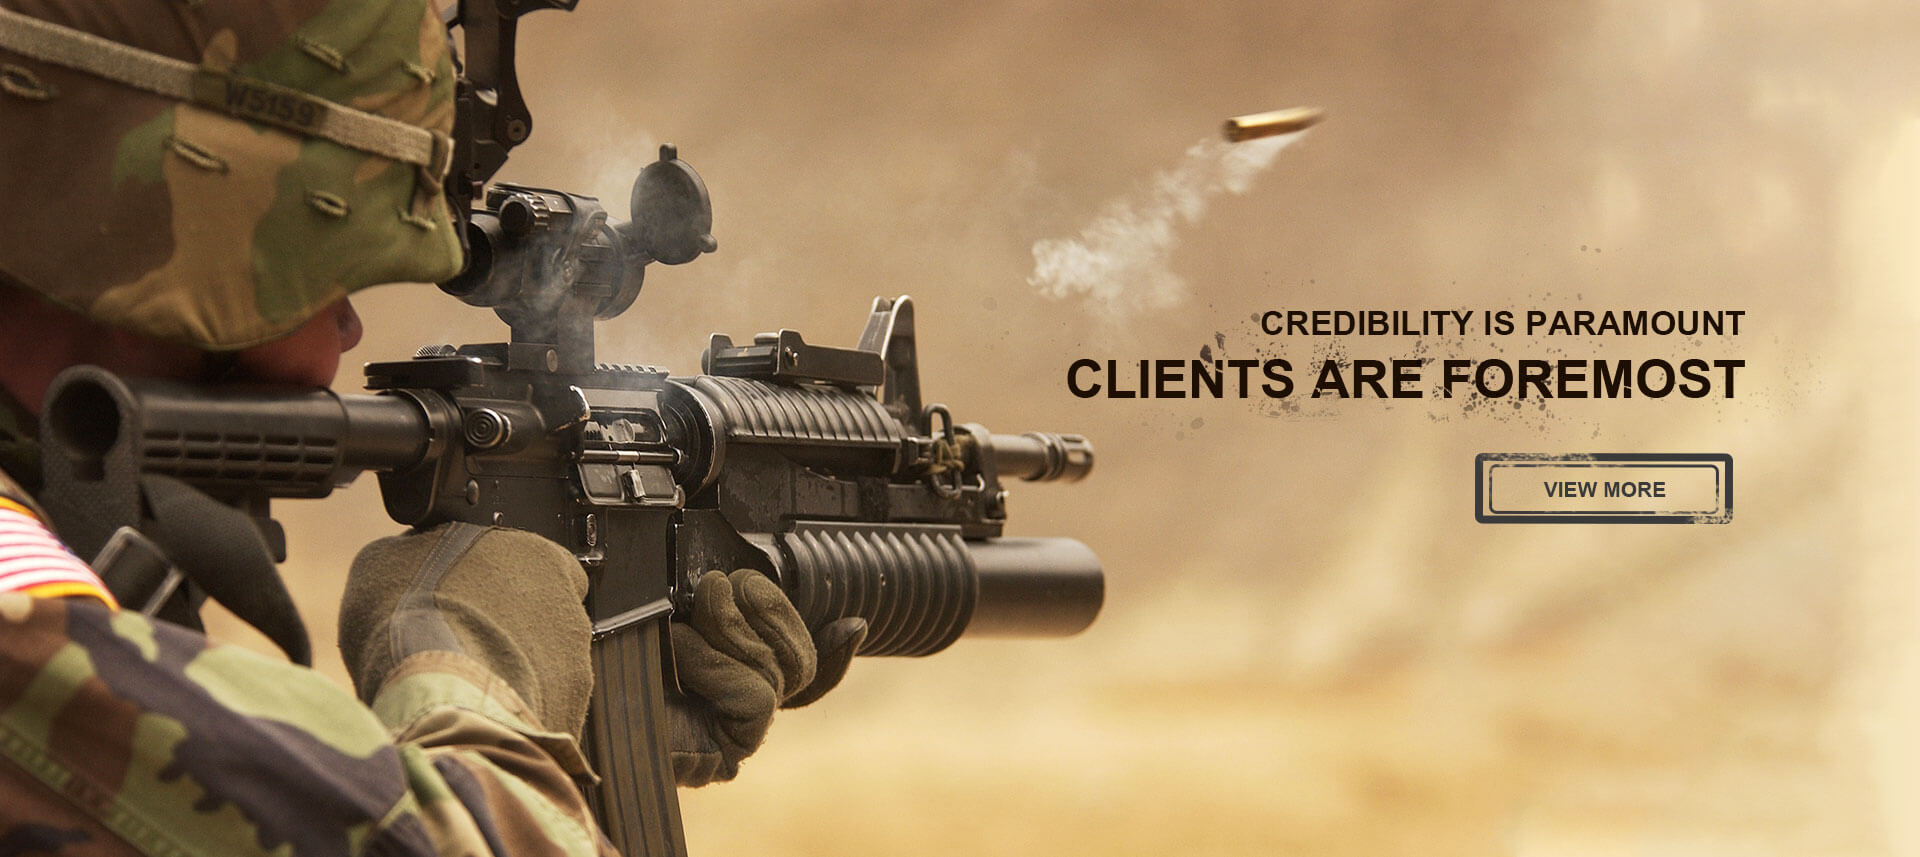 Credibility is paramount clients are foremost